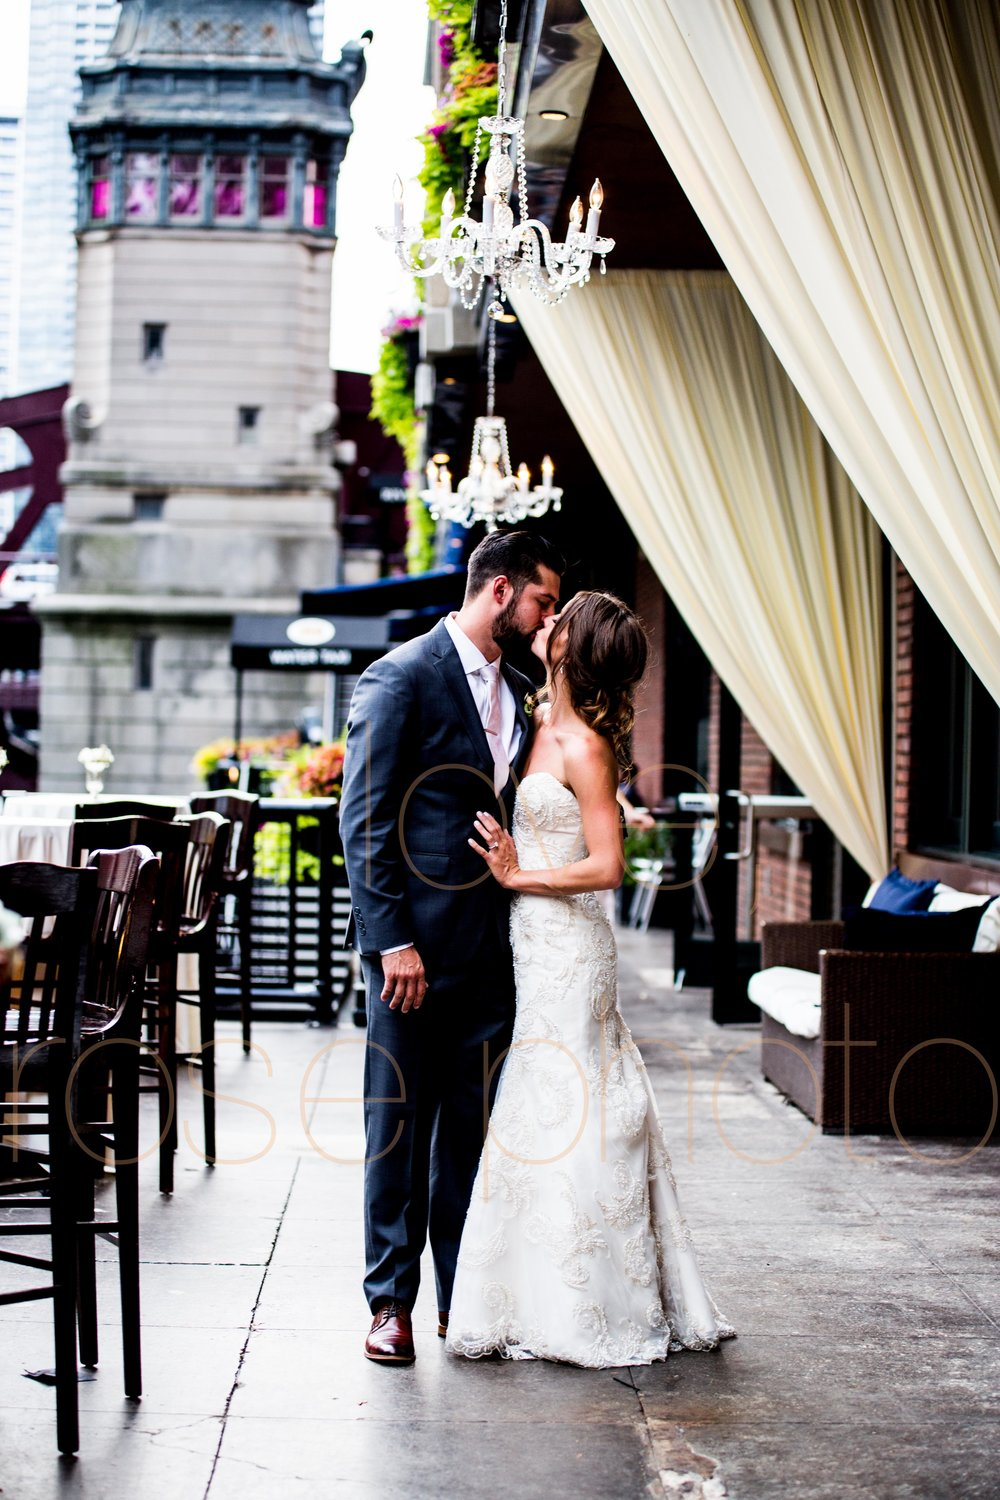 Justine + Matt big day downtown Chicago River Roast wedding by Rose Photo-36.jpg